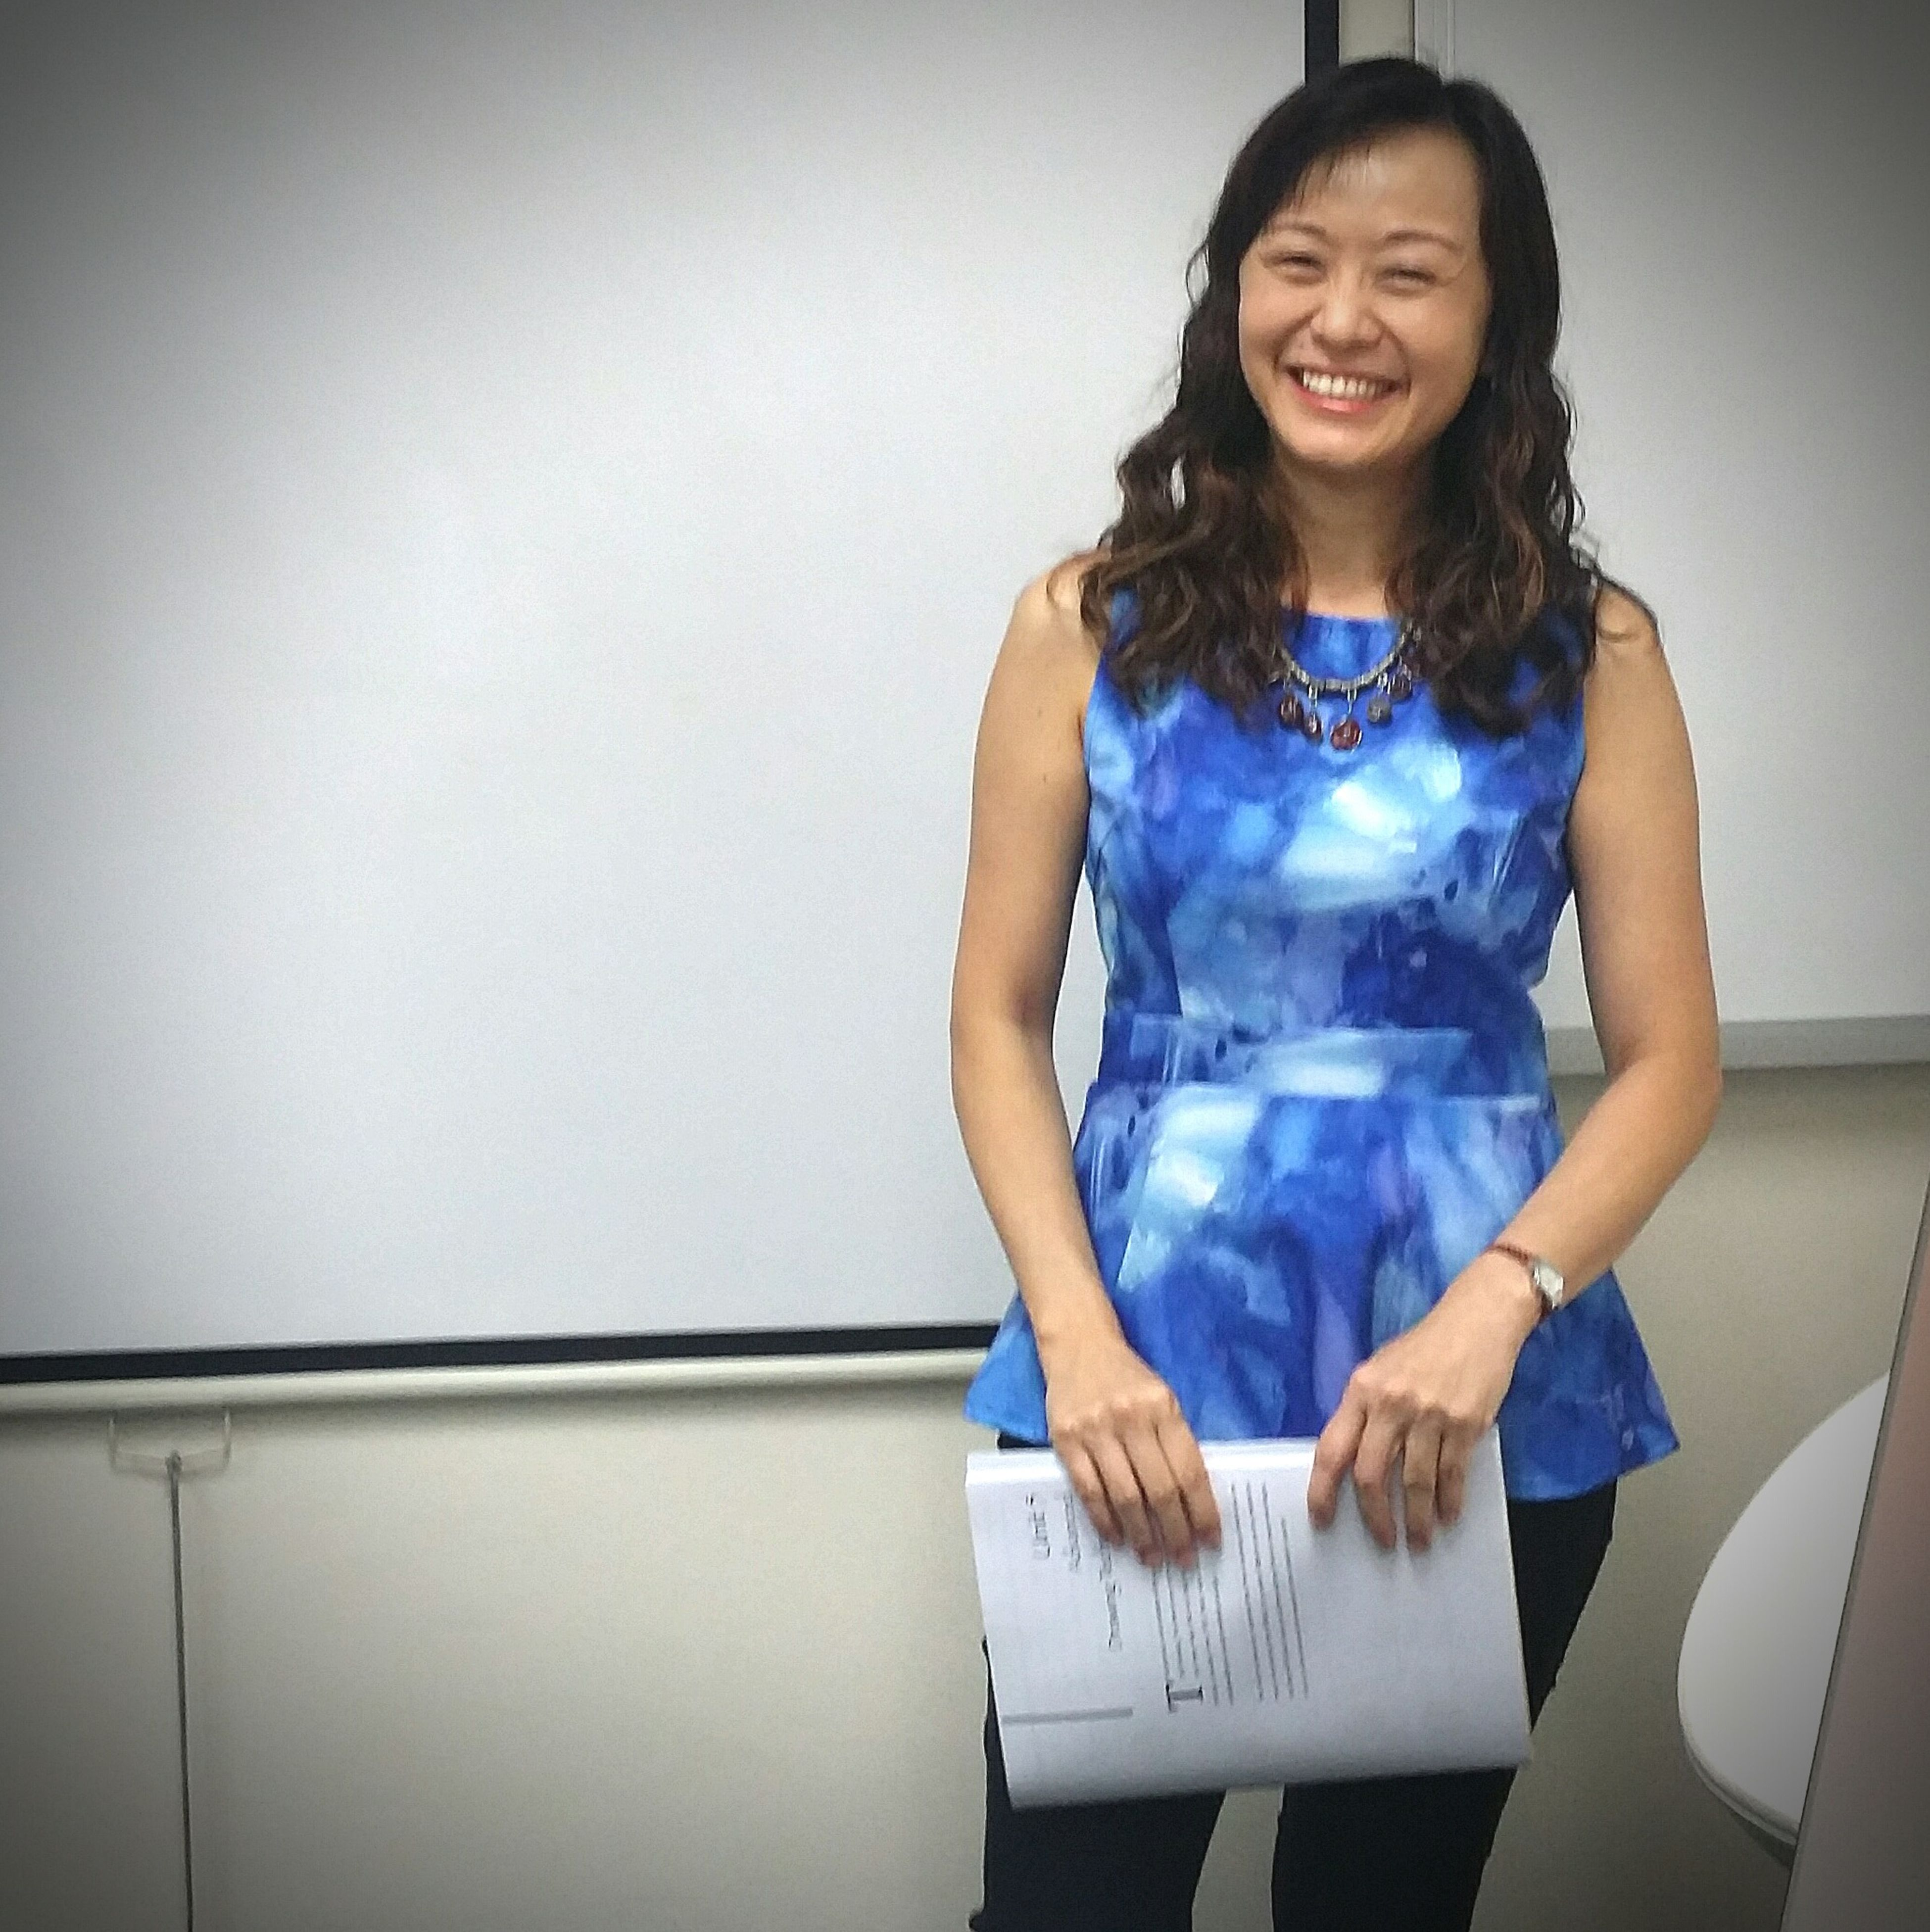 I took her course in June and now taking two more with her. Software Software Trainer Smile Happy People Singapore